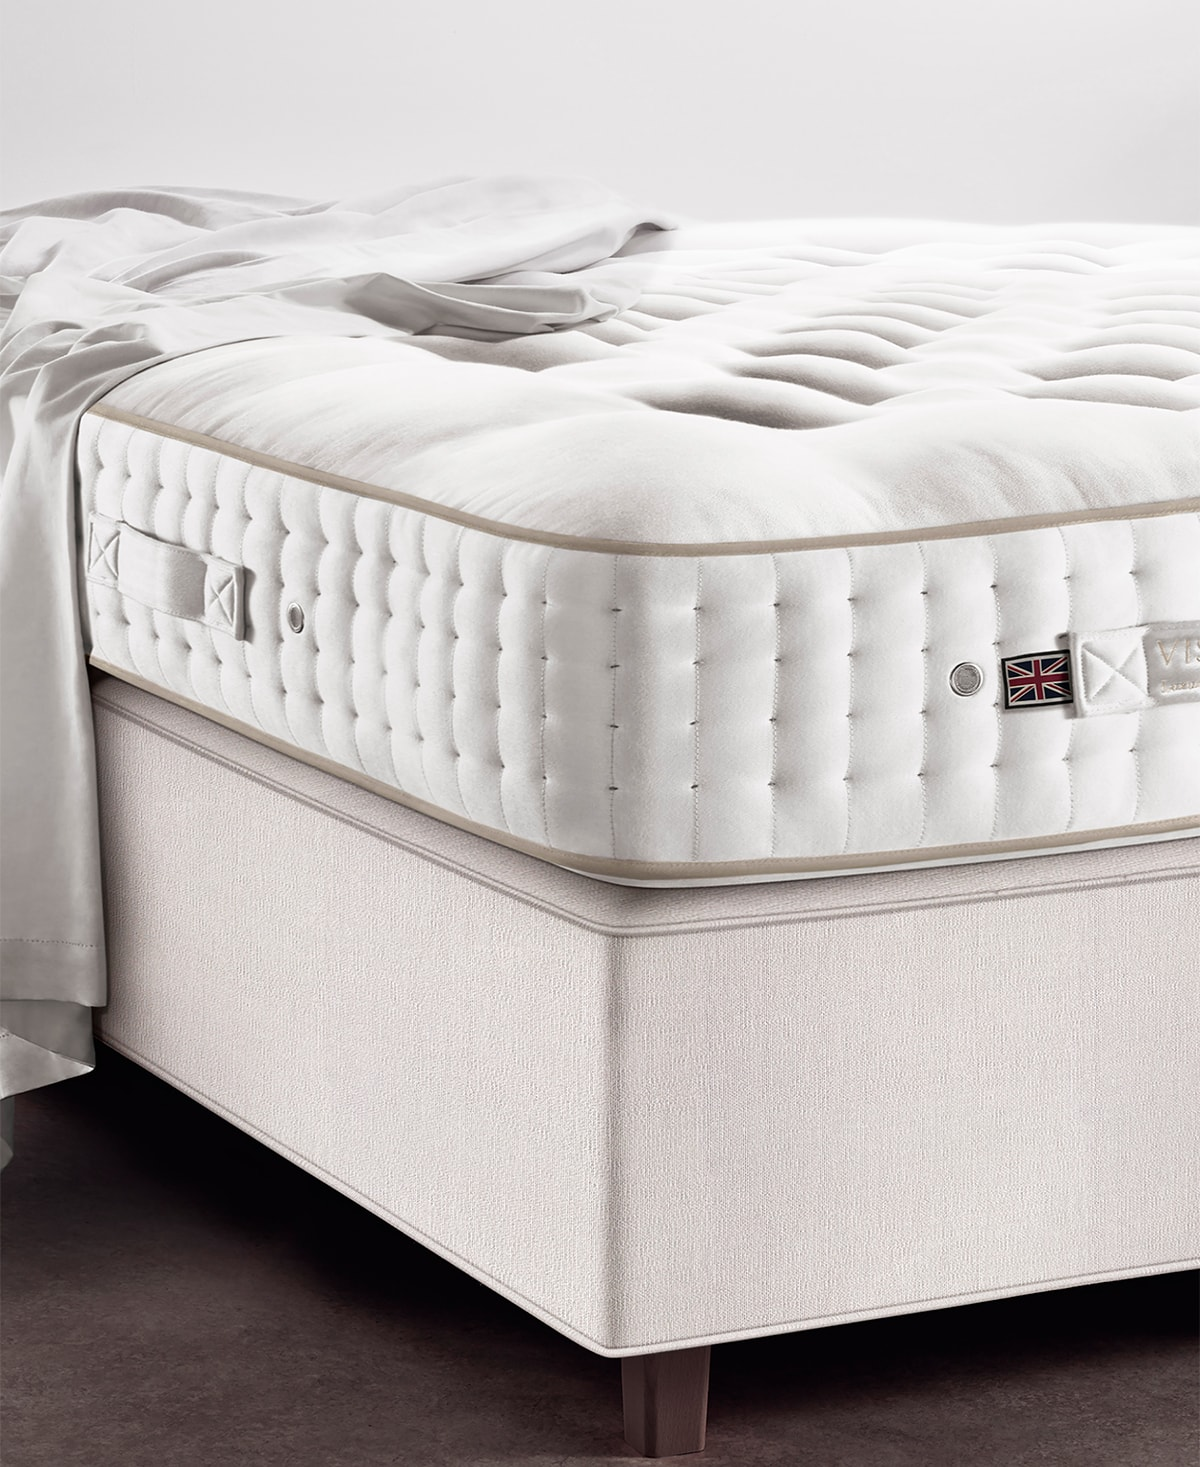 Vispring Bespoke Luxury Mattress | Sublime Superb